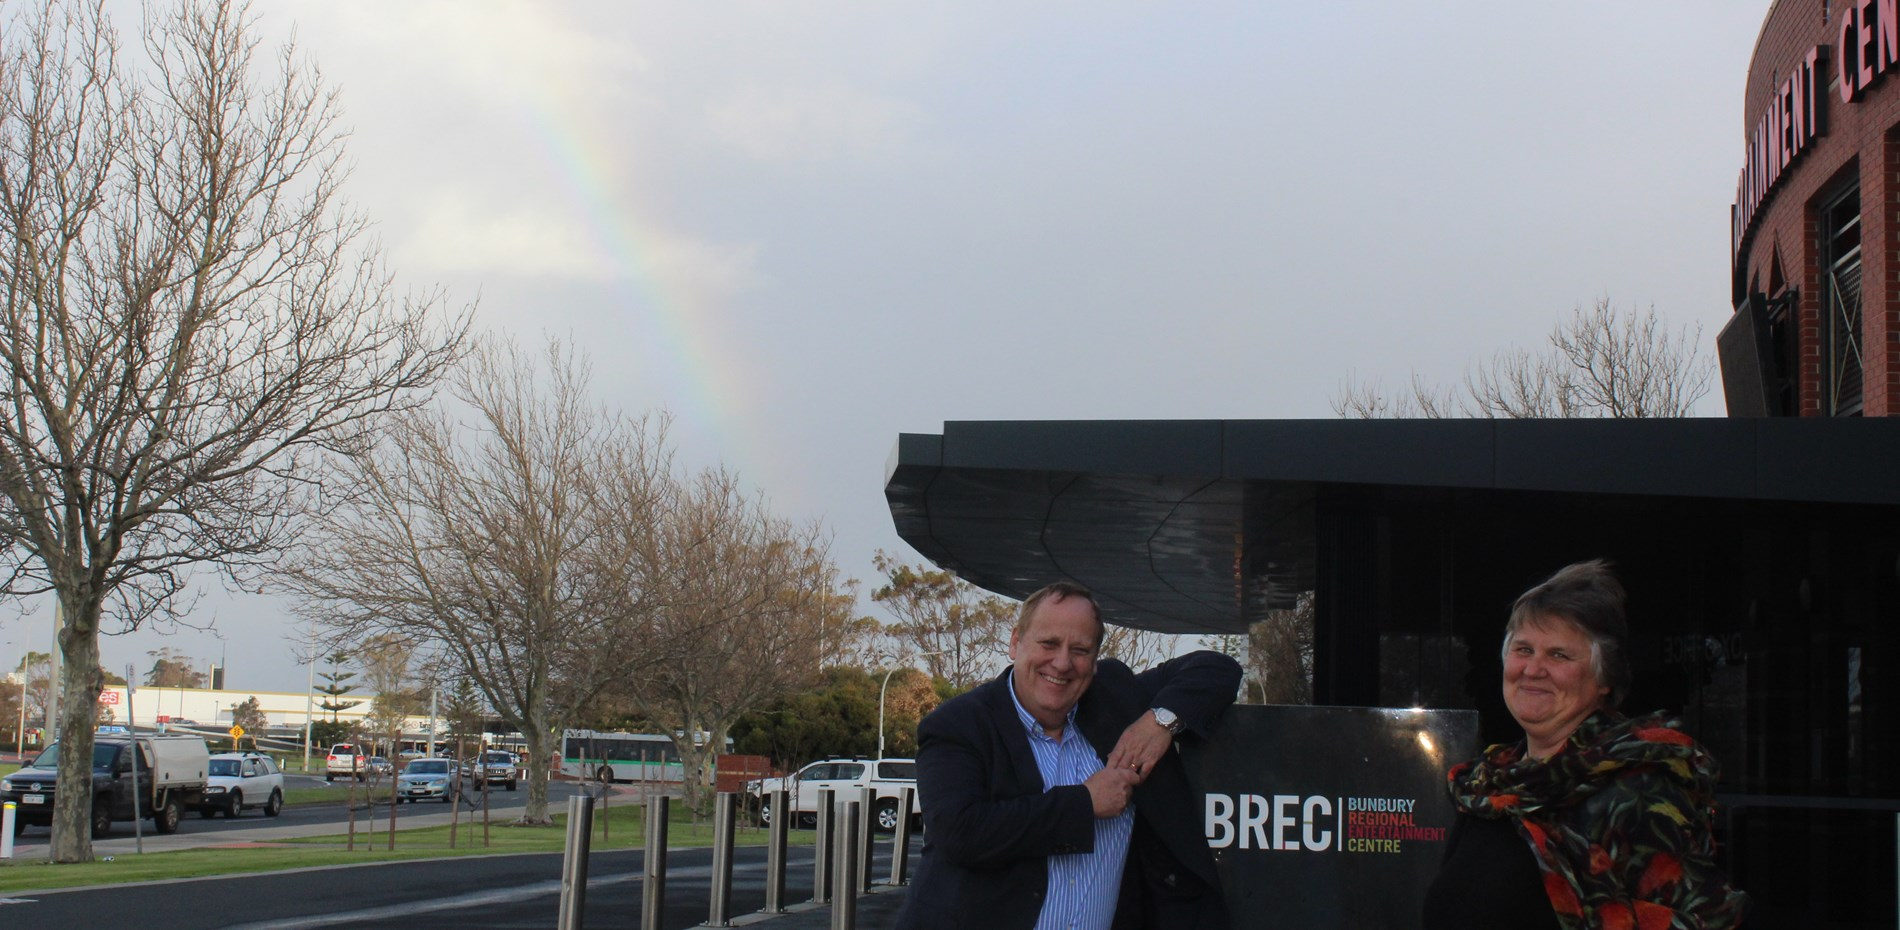 Funding to support BREC during hard times Main Image